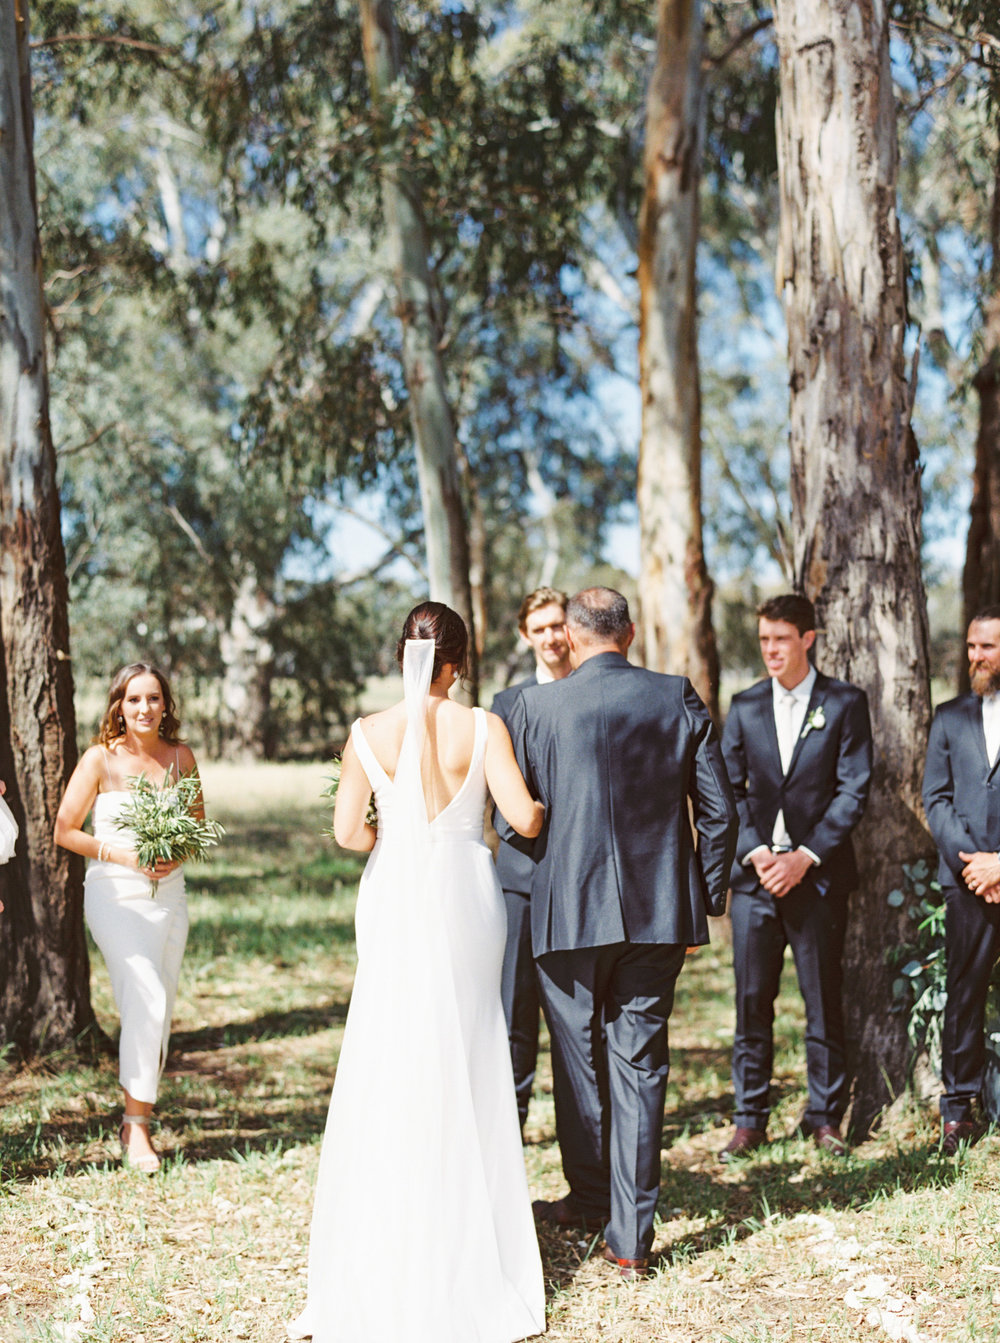 00026- Olive Tree Mediterranean Wedding in Mudgee NSW Australia Fine Art Film Wedding Lifestyle Photographer Sheri McMahon_.jpg